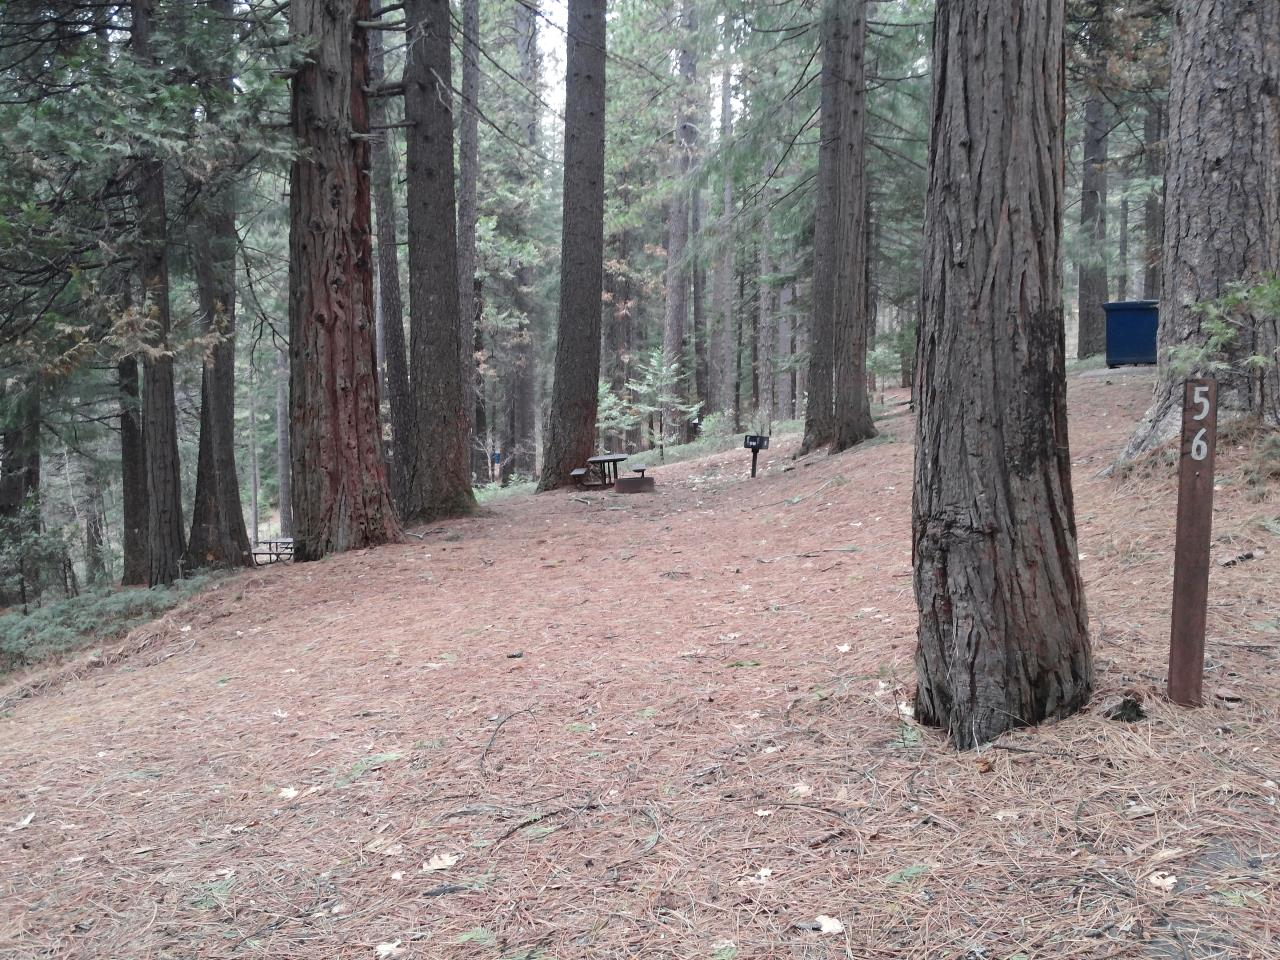 Sierra Spur site #56 - 2 vehicles, tent only - shade, level, super tight entrance